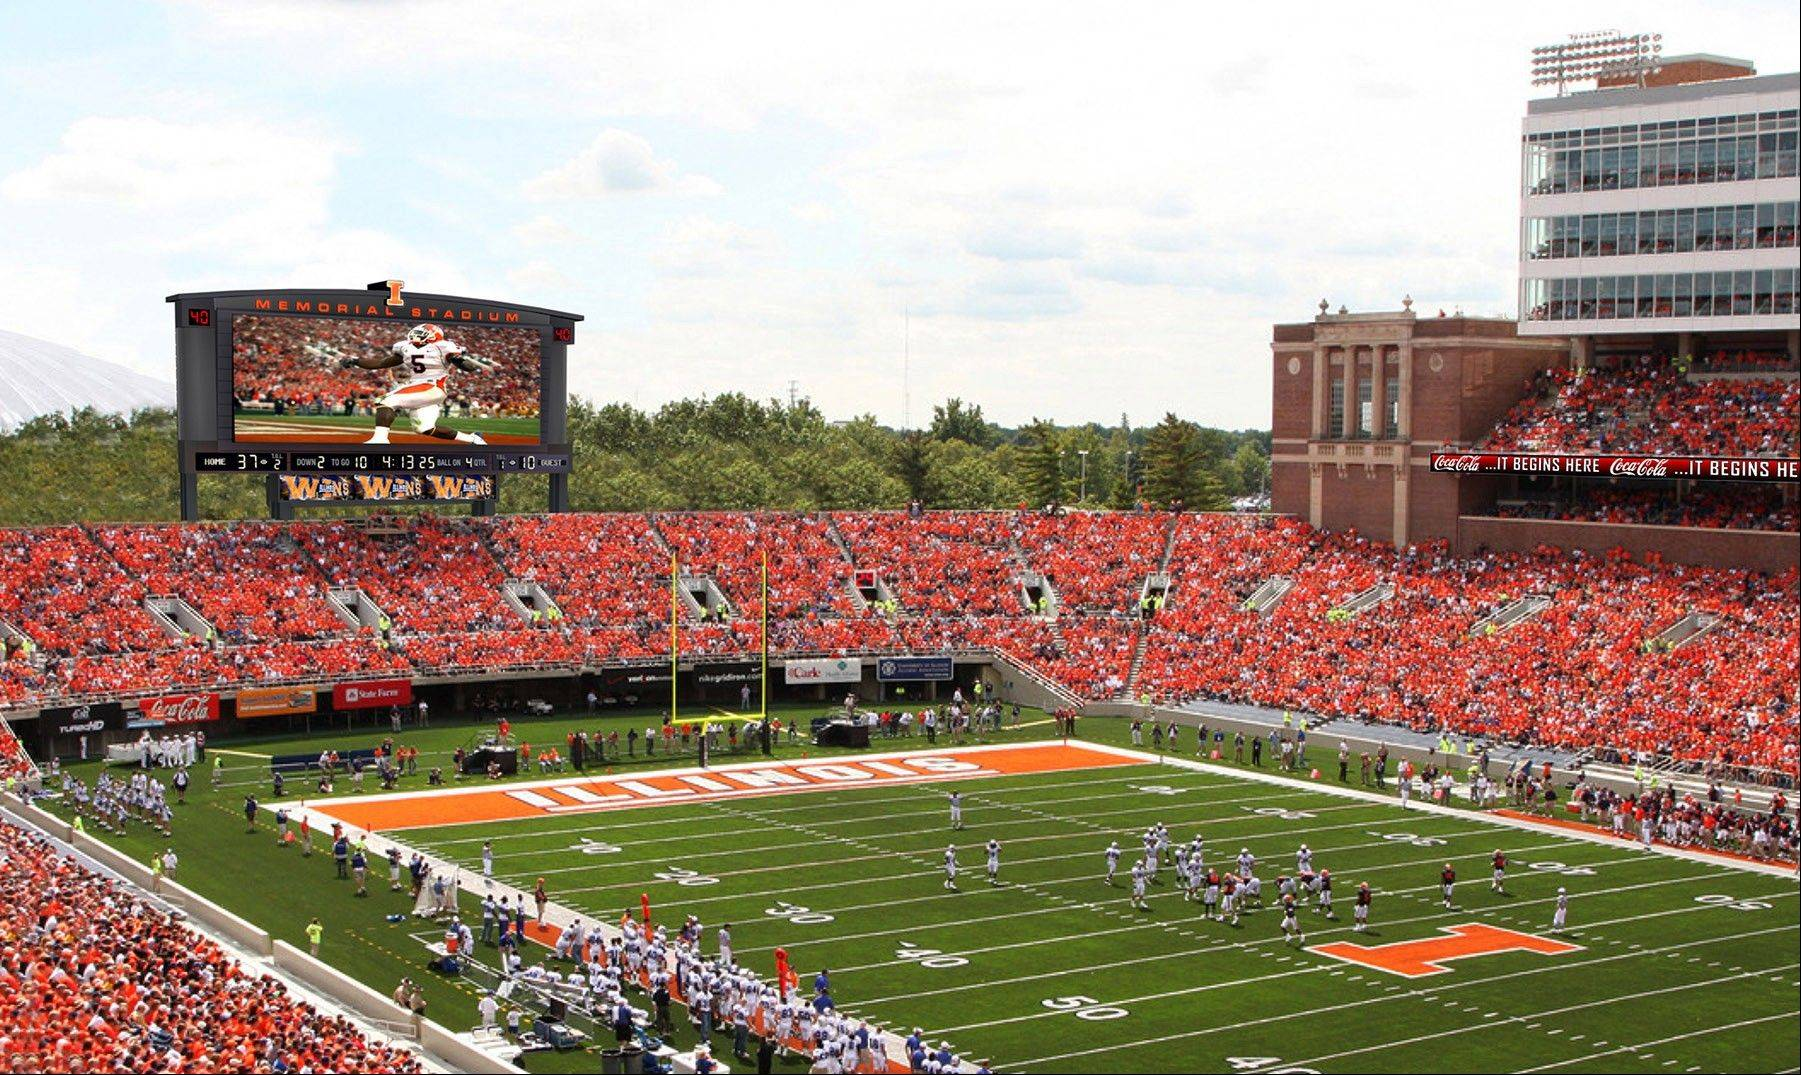 Next fall, the south end zone at Memorial Stadium in Champaign will have a new video display that will stand 36 feet tall by 96 feet wide. Other sound and video enhancements are planned throughout the stadium.